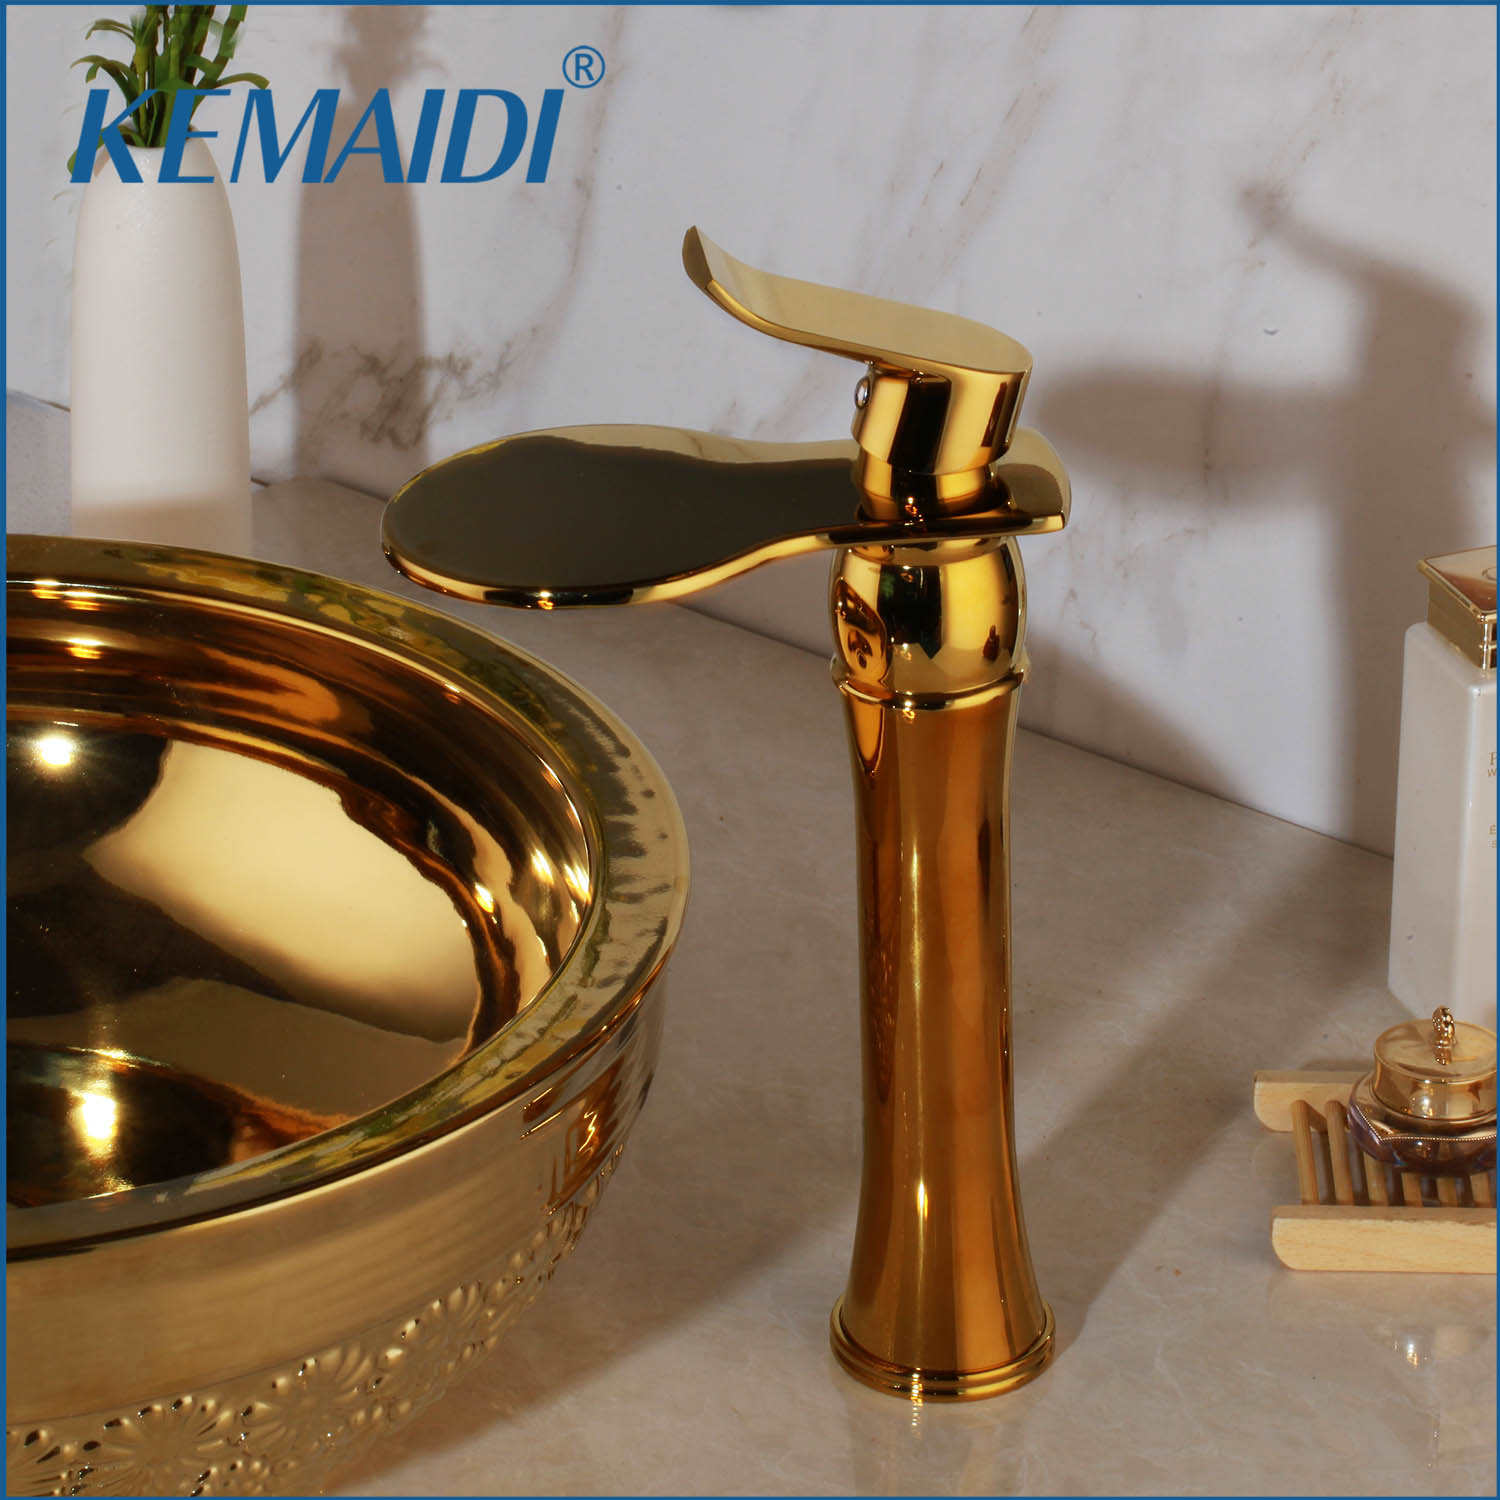 KEMAIDI  Luxury Tall Single Hole/Handle Polished Golden Wide Waterfall Spout Bathroom Wash Basin Sink Mixer Tap FaucetKEMAIDI  Luxury Tall Single Hole/Handle Polished Golden Wide Waterfall Spout Bathroom Wash Basin Sink Mixer Tap Faucet